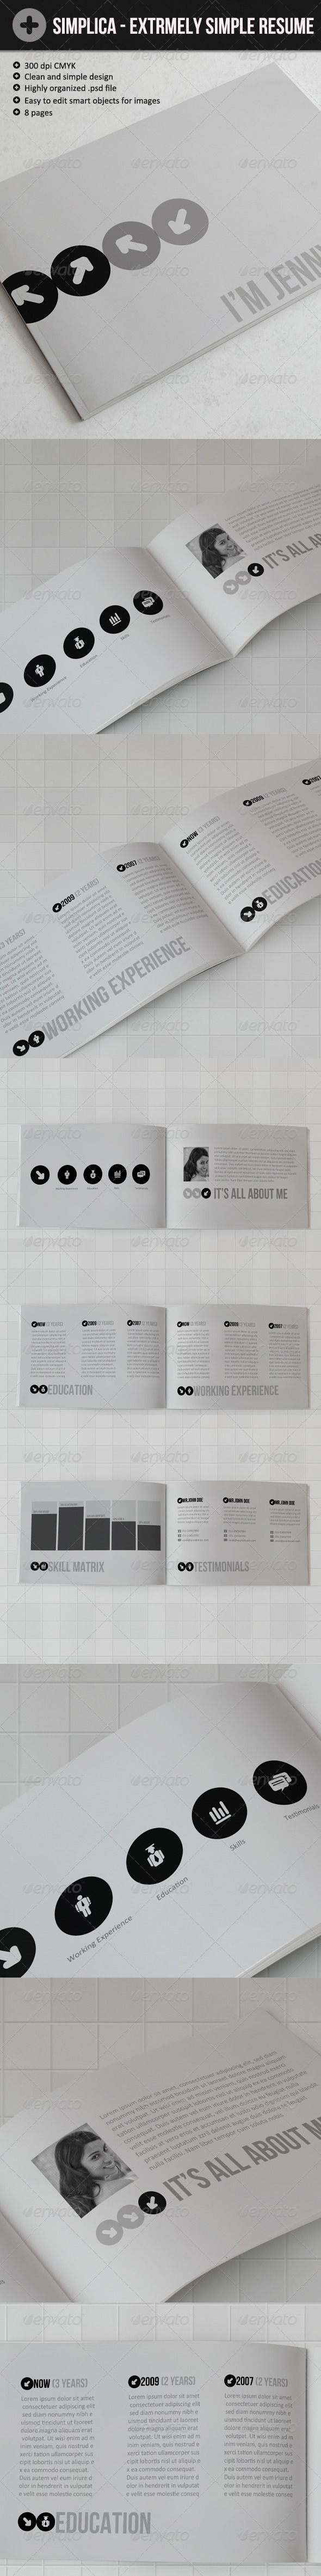 Simplica - Ultra Simple Resume Book - Resumes Stationery